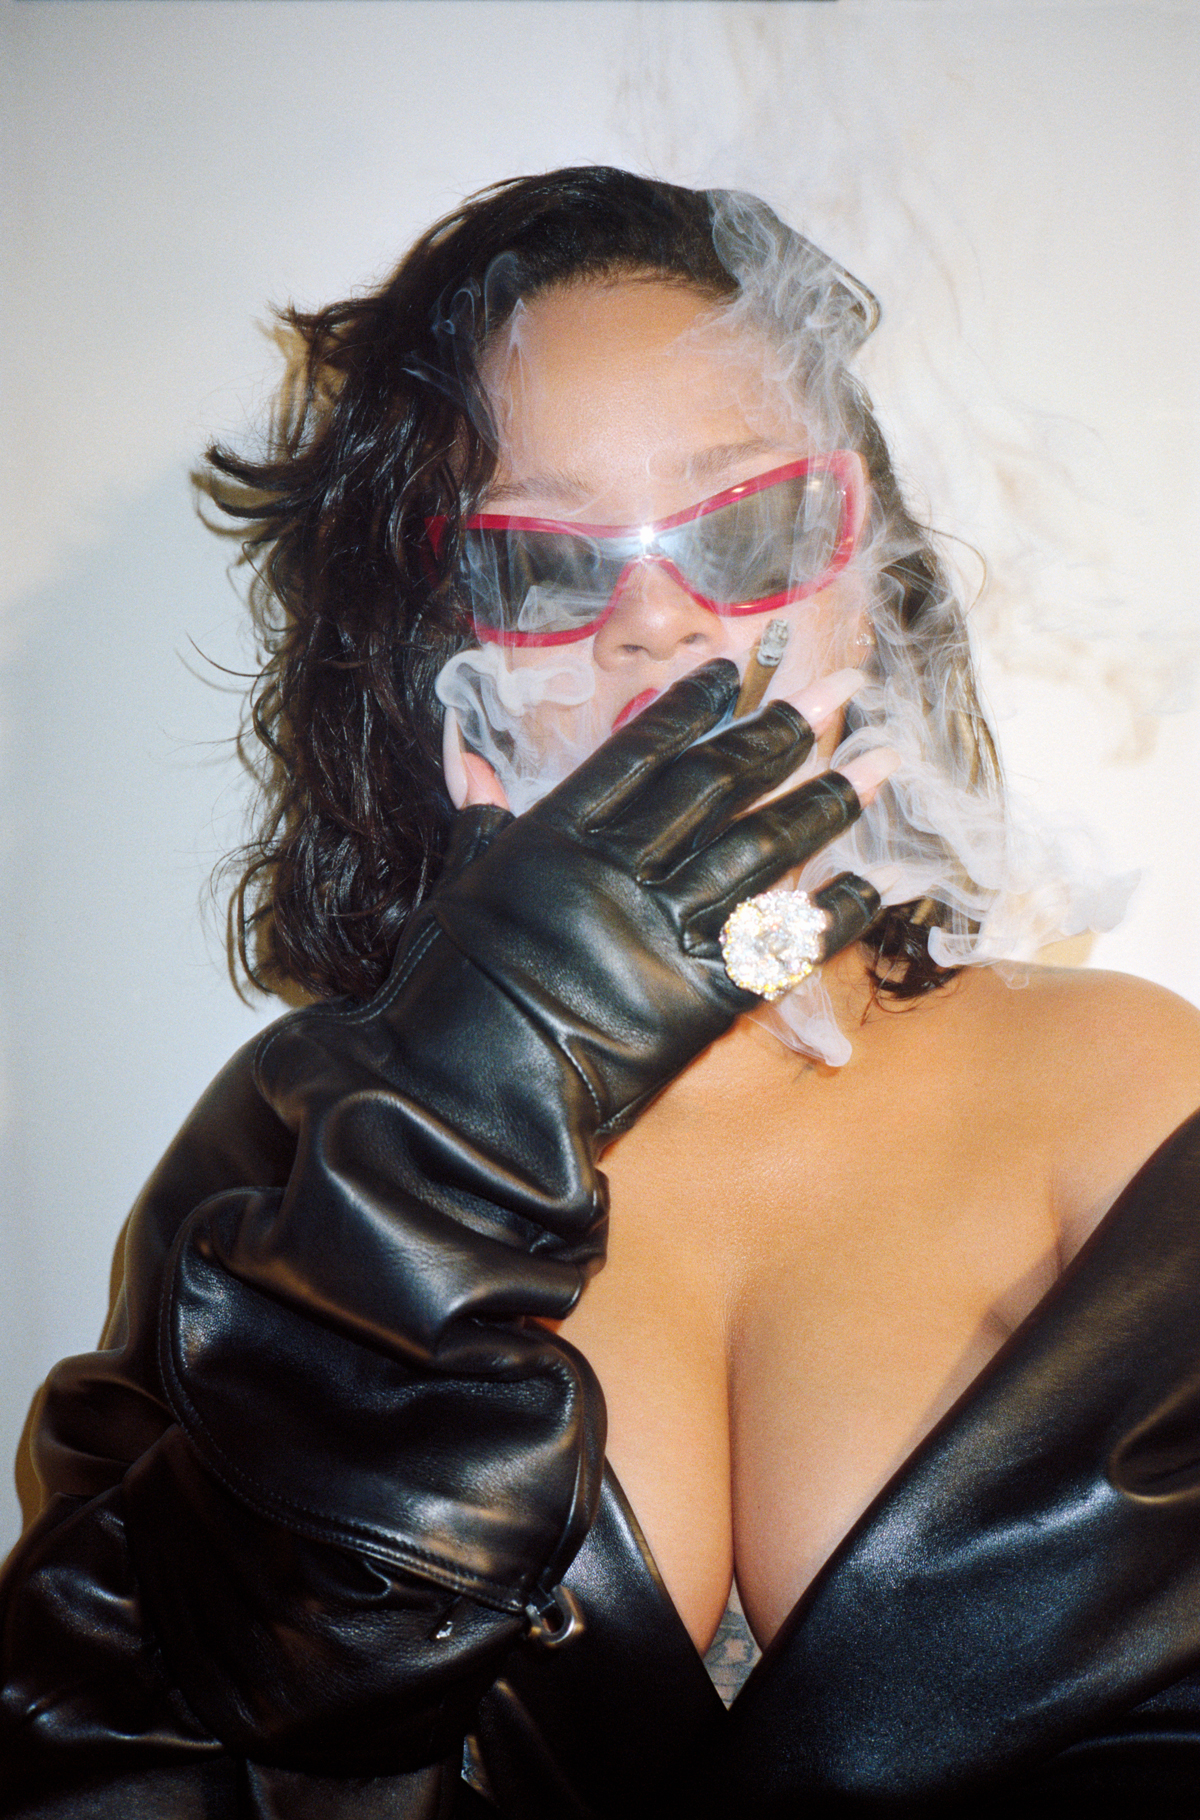 Coat by  Balenciaga.  Sunglasses by  Adam Selman x Le Specs.  Earrings and Ring by  Dior Fine Jewelry. Gloves by Rick Owens.